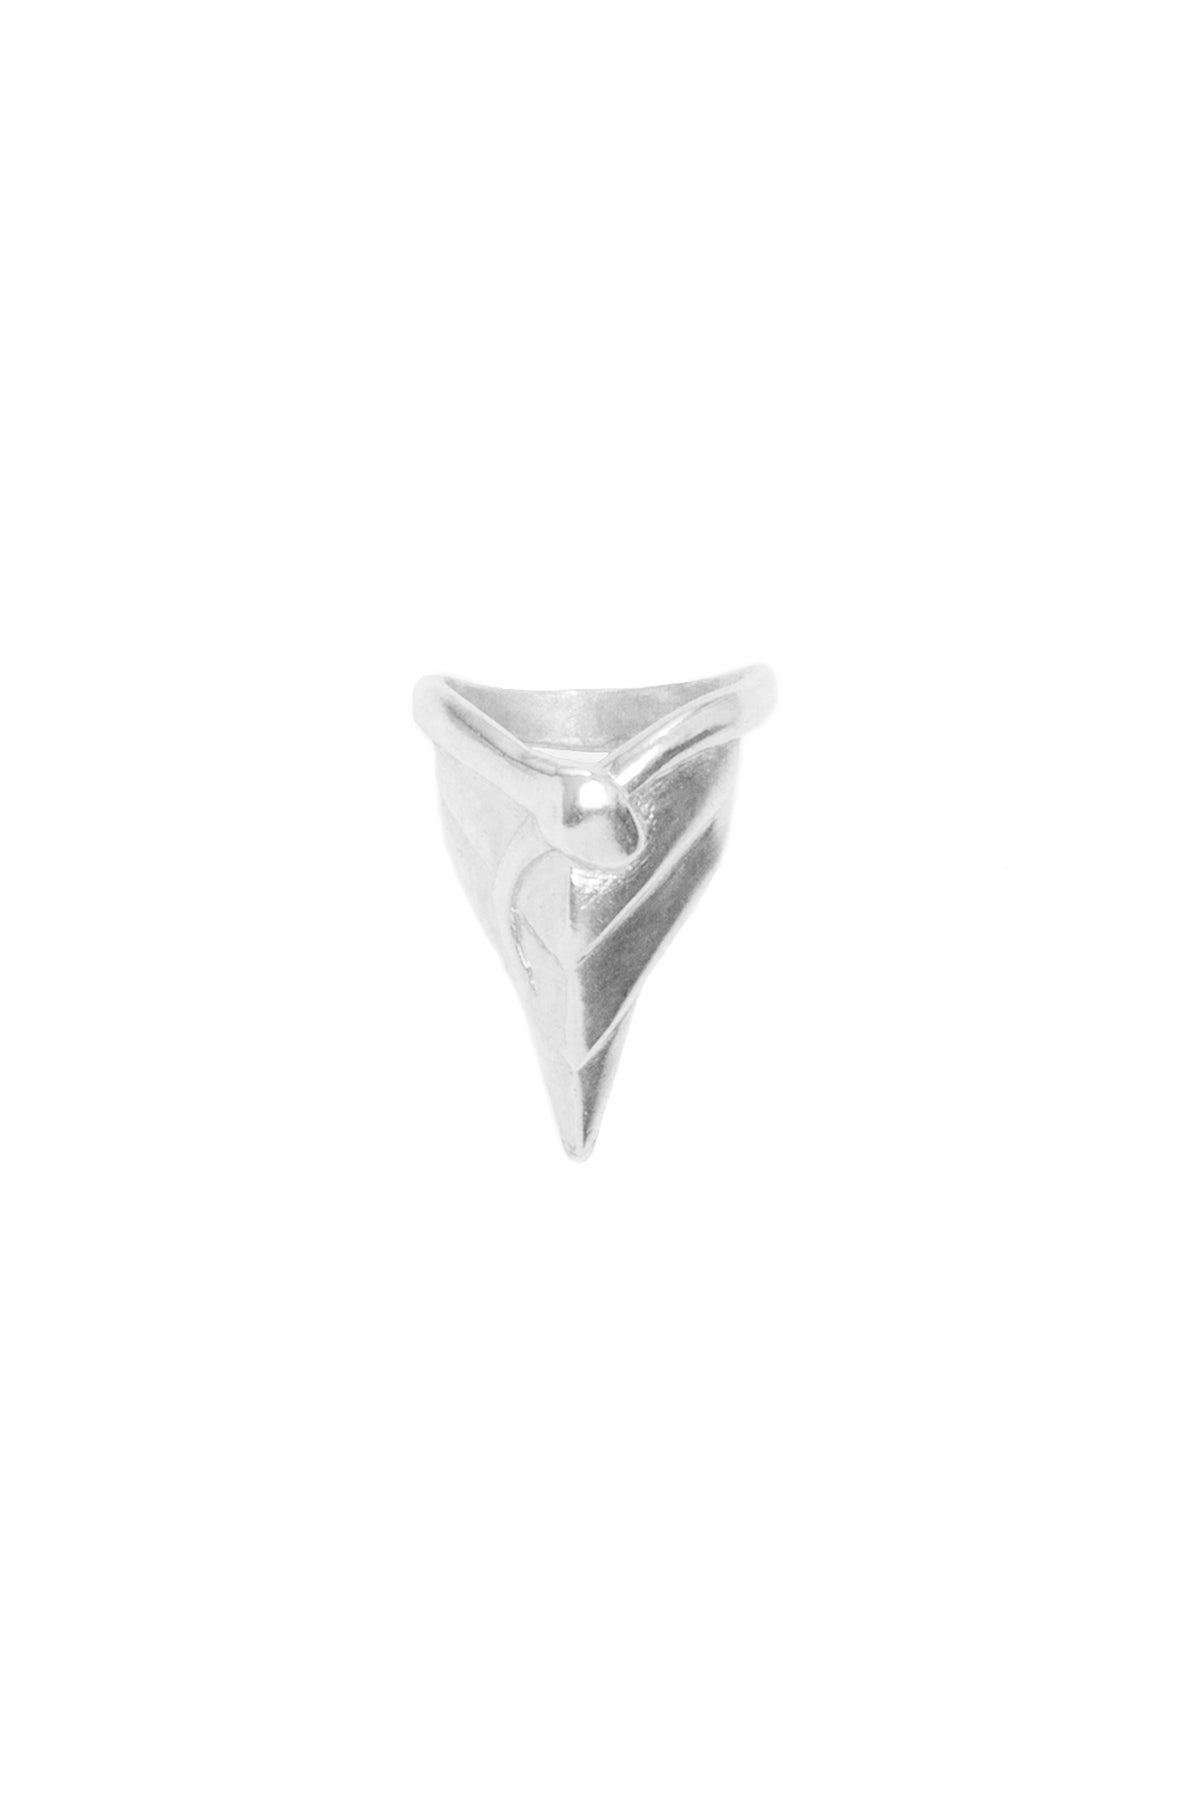 Image of CHARMER RING - SILVER